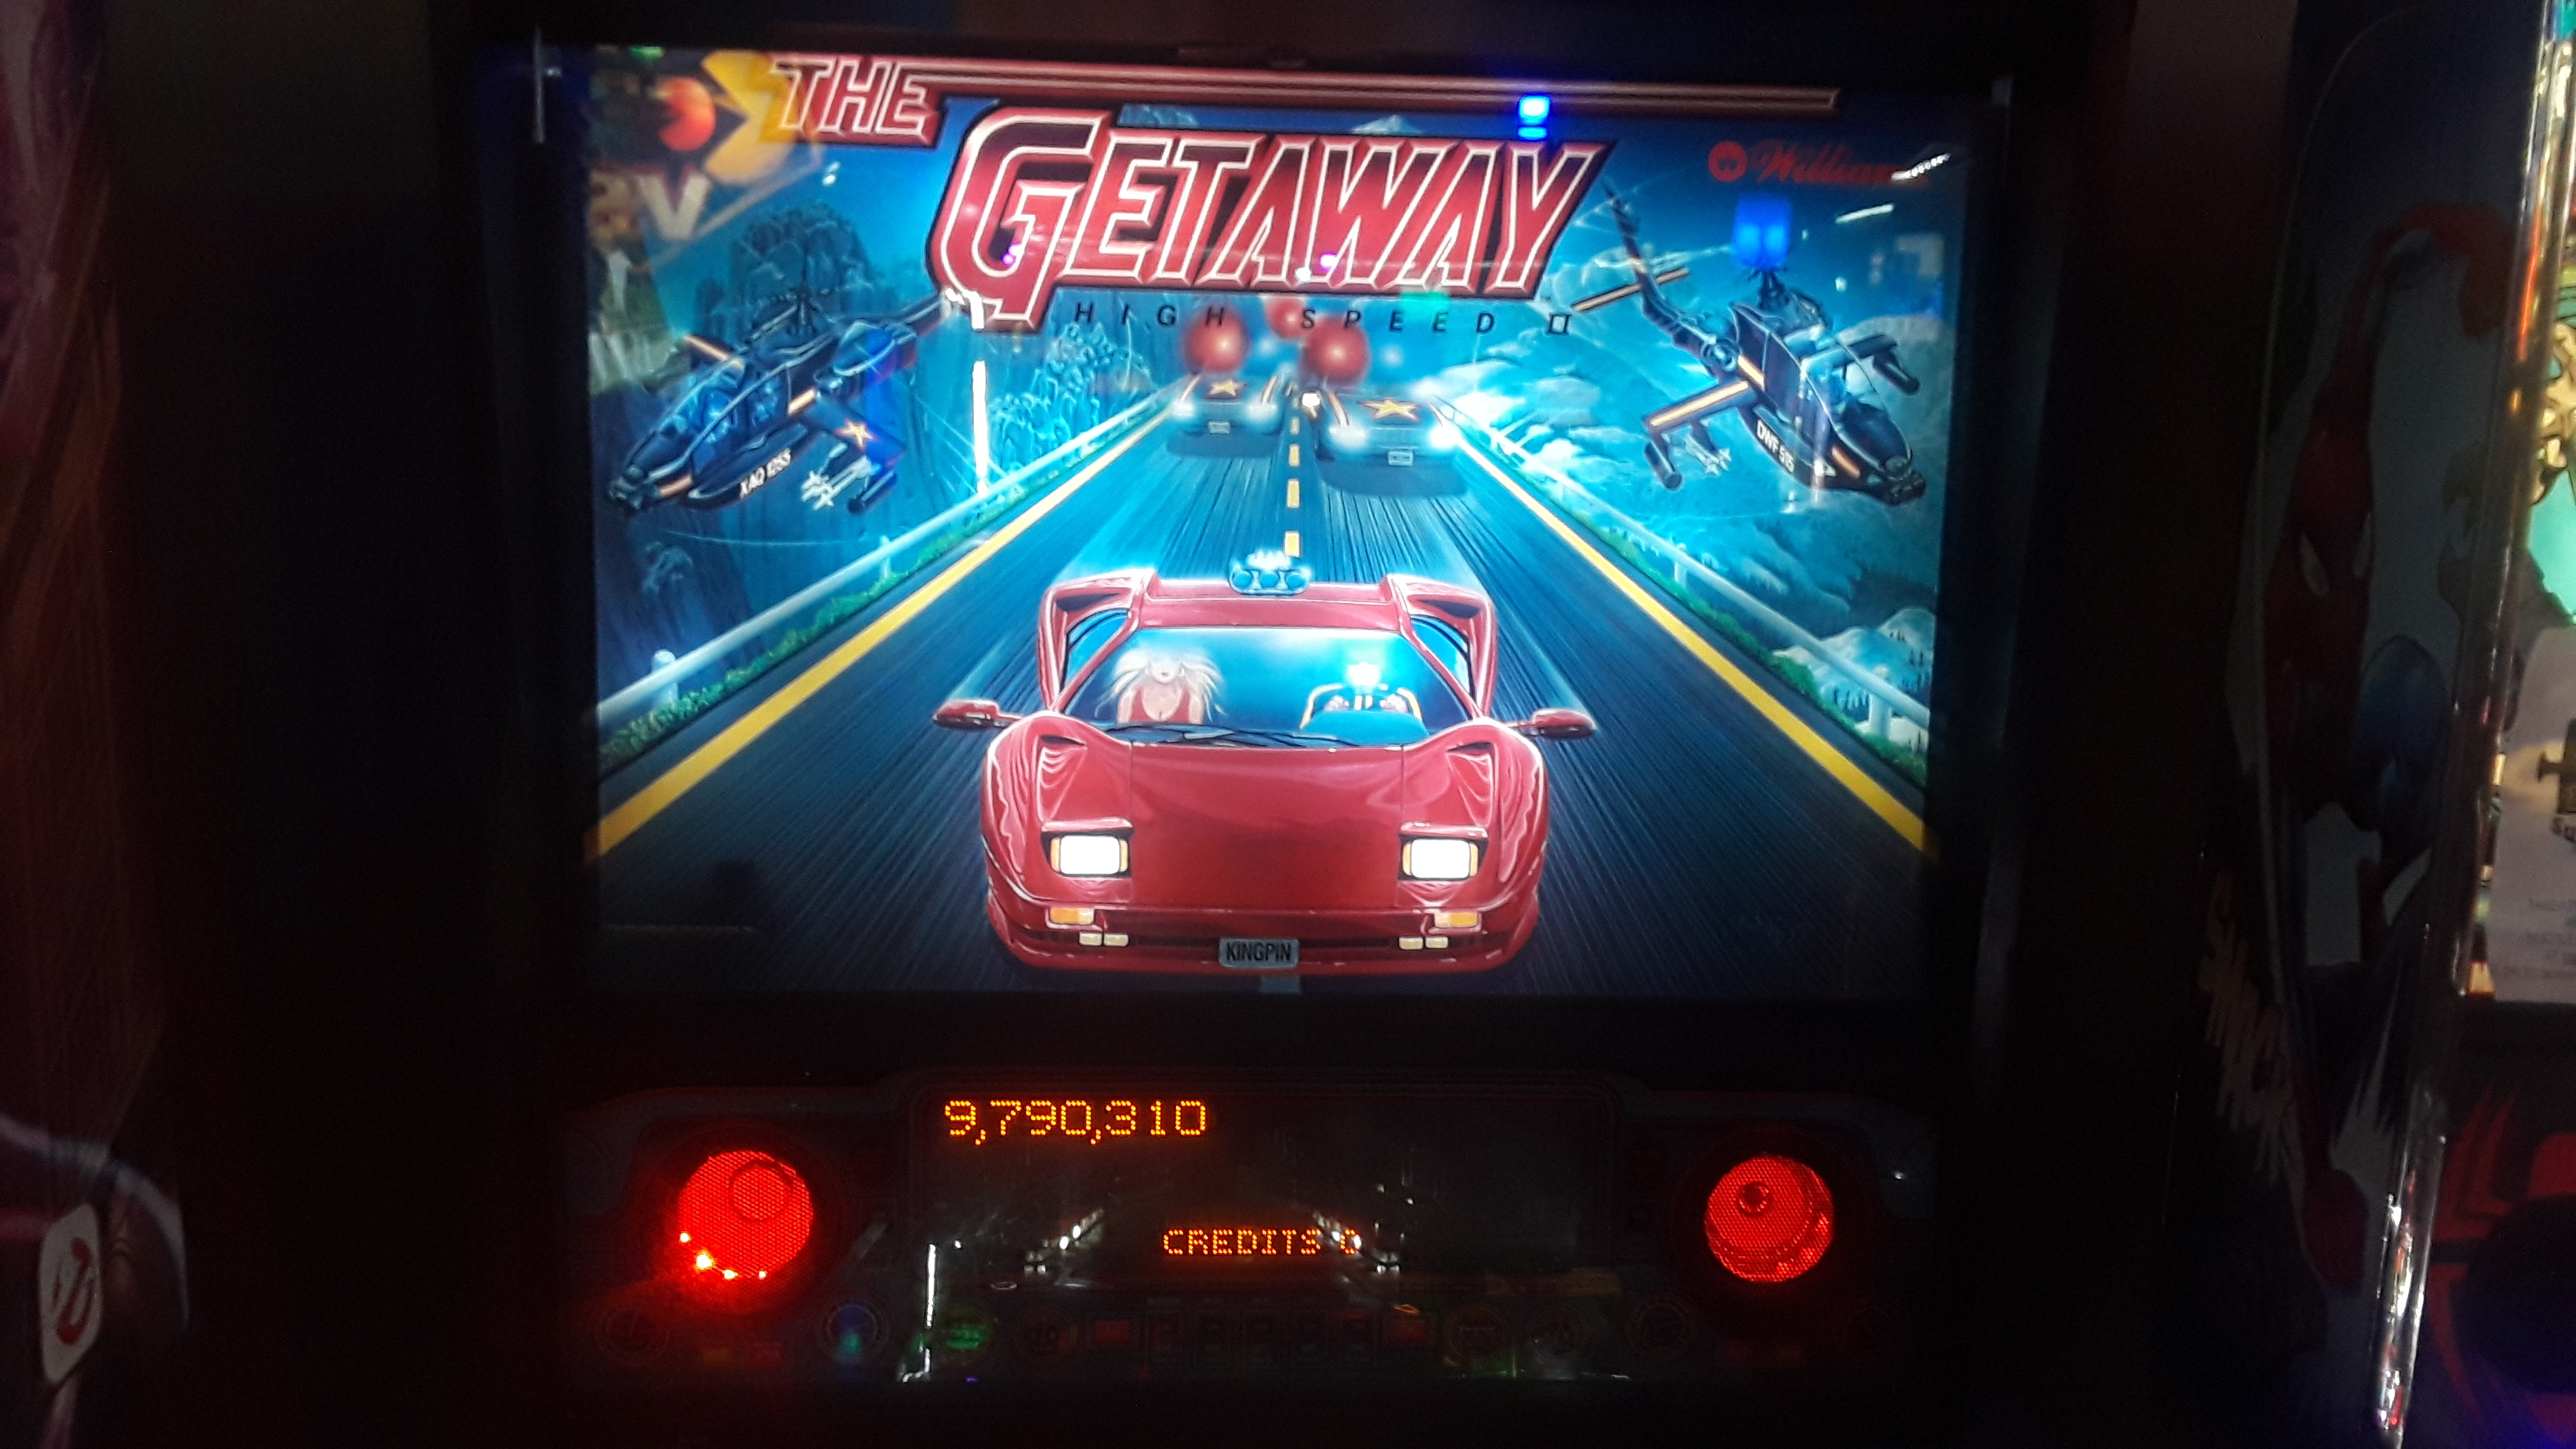 The Getaway: High Speed II 9,790,310 points